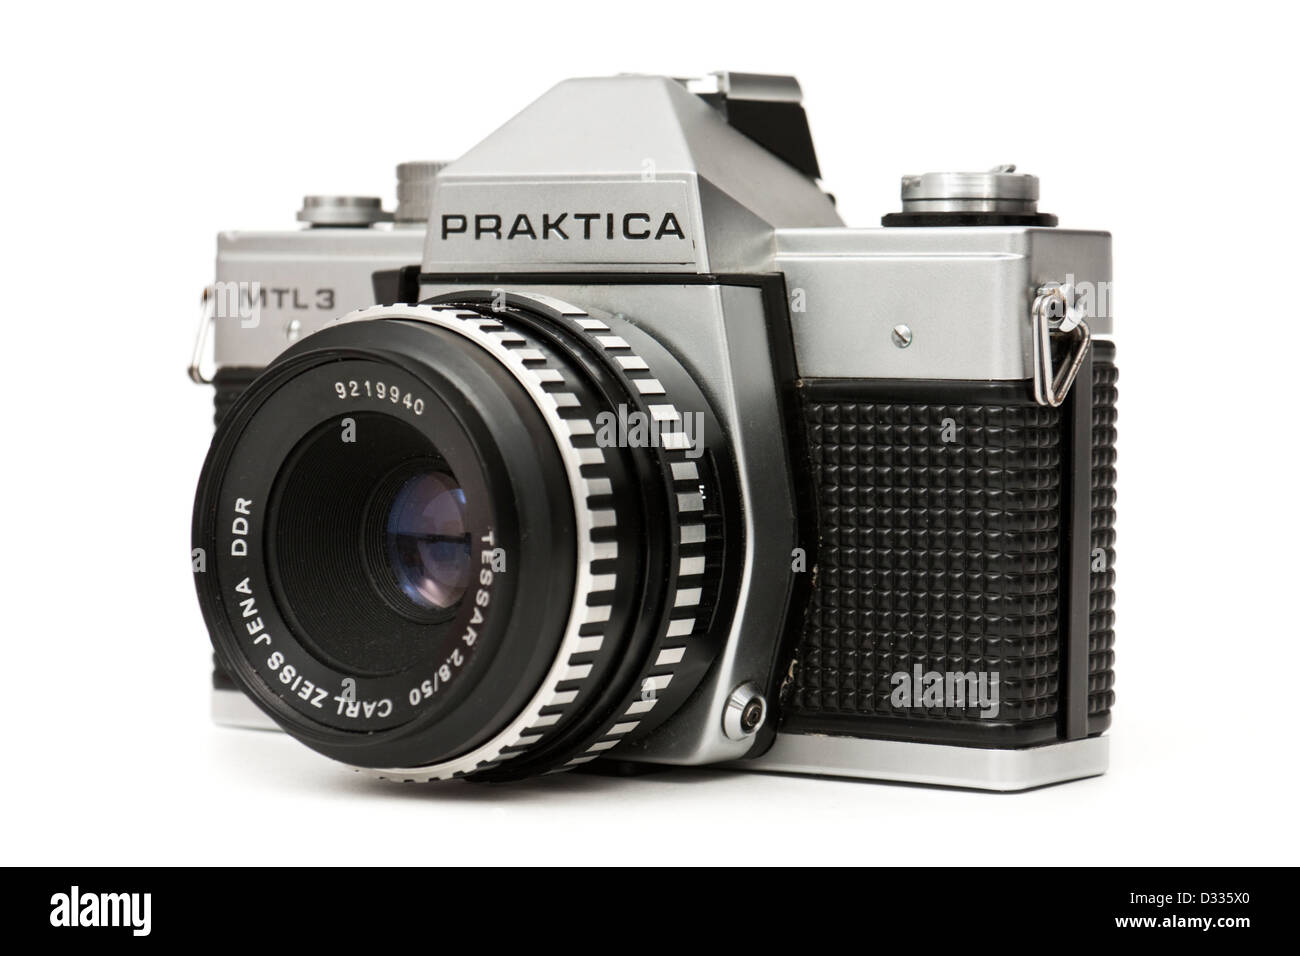 Vintage late 1970's Praktica MTL3 single lens reflex (SLR) 35mm film camera, made by Pentacon in East Germany (DDR) Stock Photo